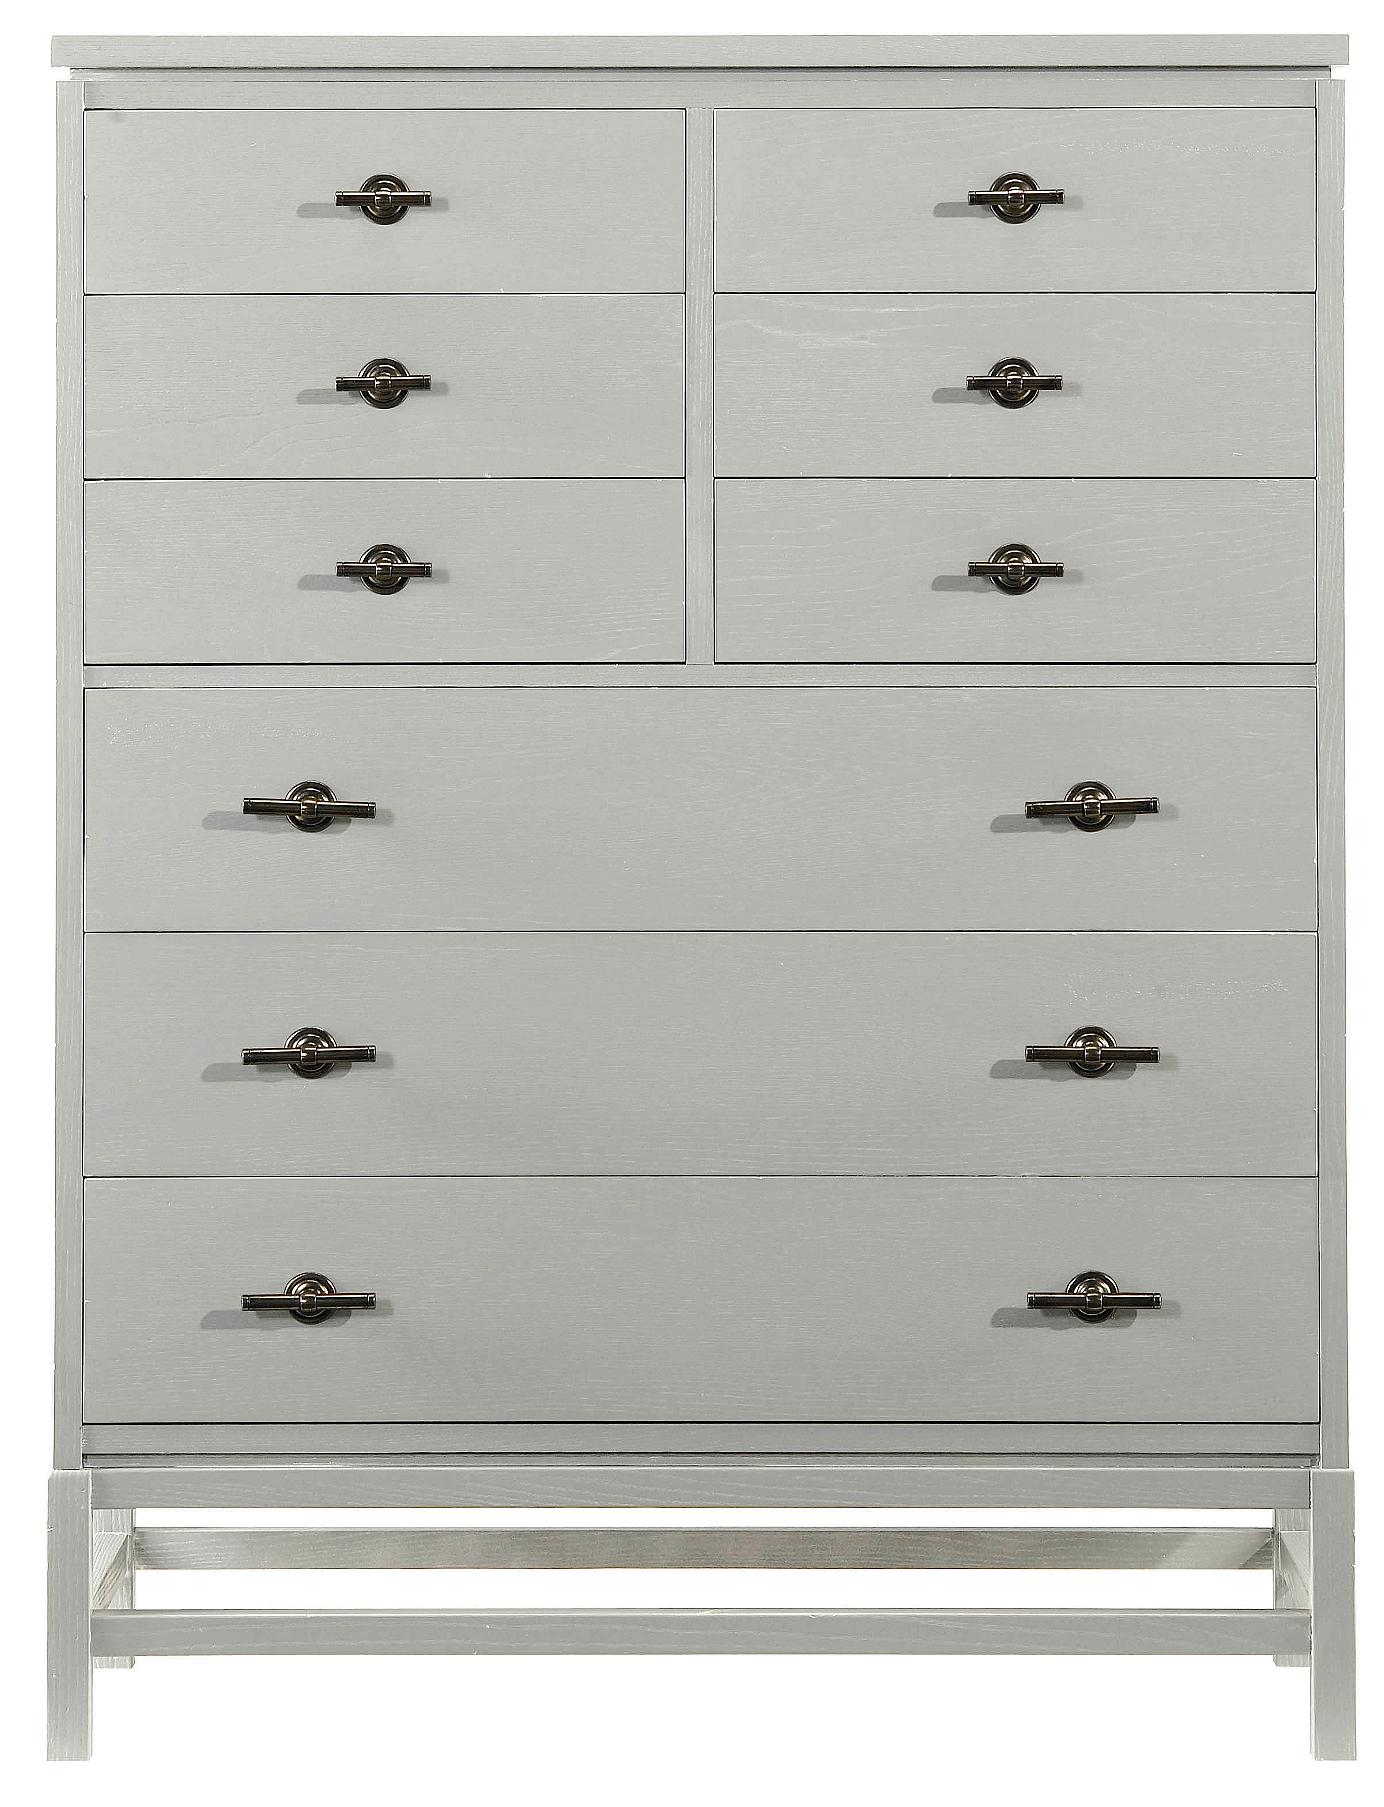 Stanley Furniture Coastal Living Resort Tranquility Isle Drawer Chest - Item Number: 062-C3-13